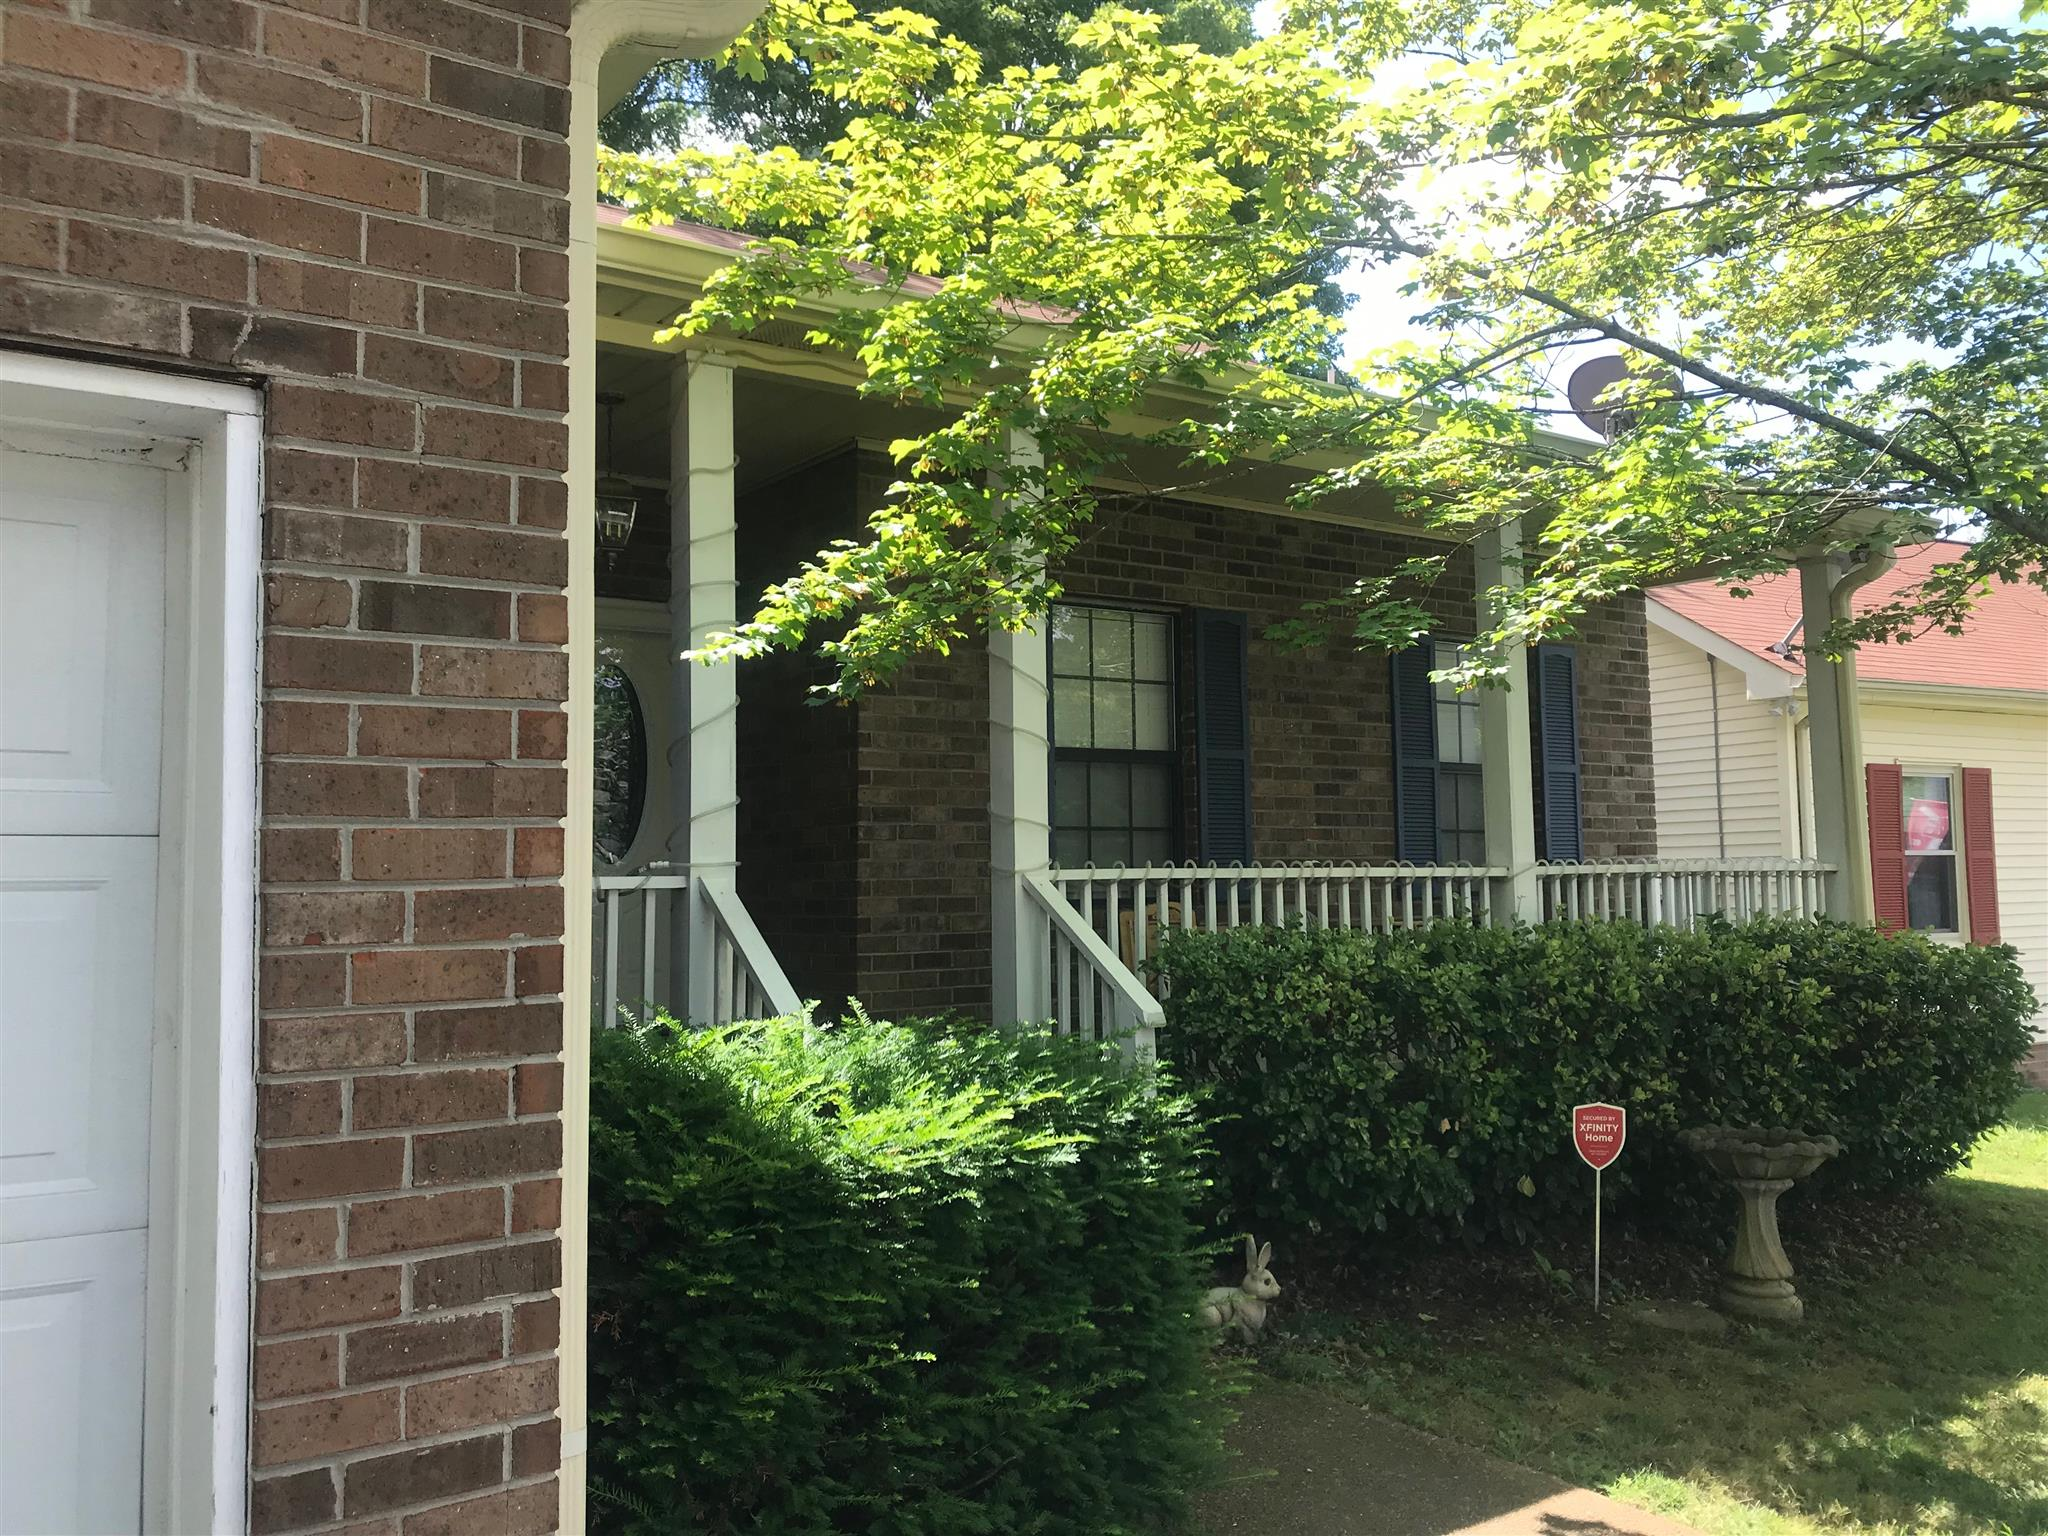 604 Poplar Valley Ct, Bellevue in Davidson County County, TN 37221 Home for Sale